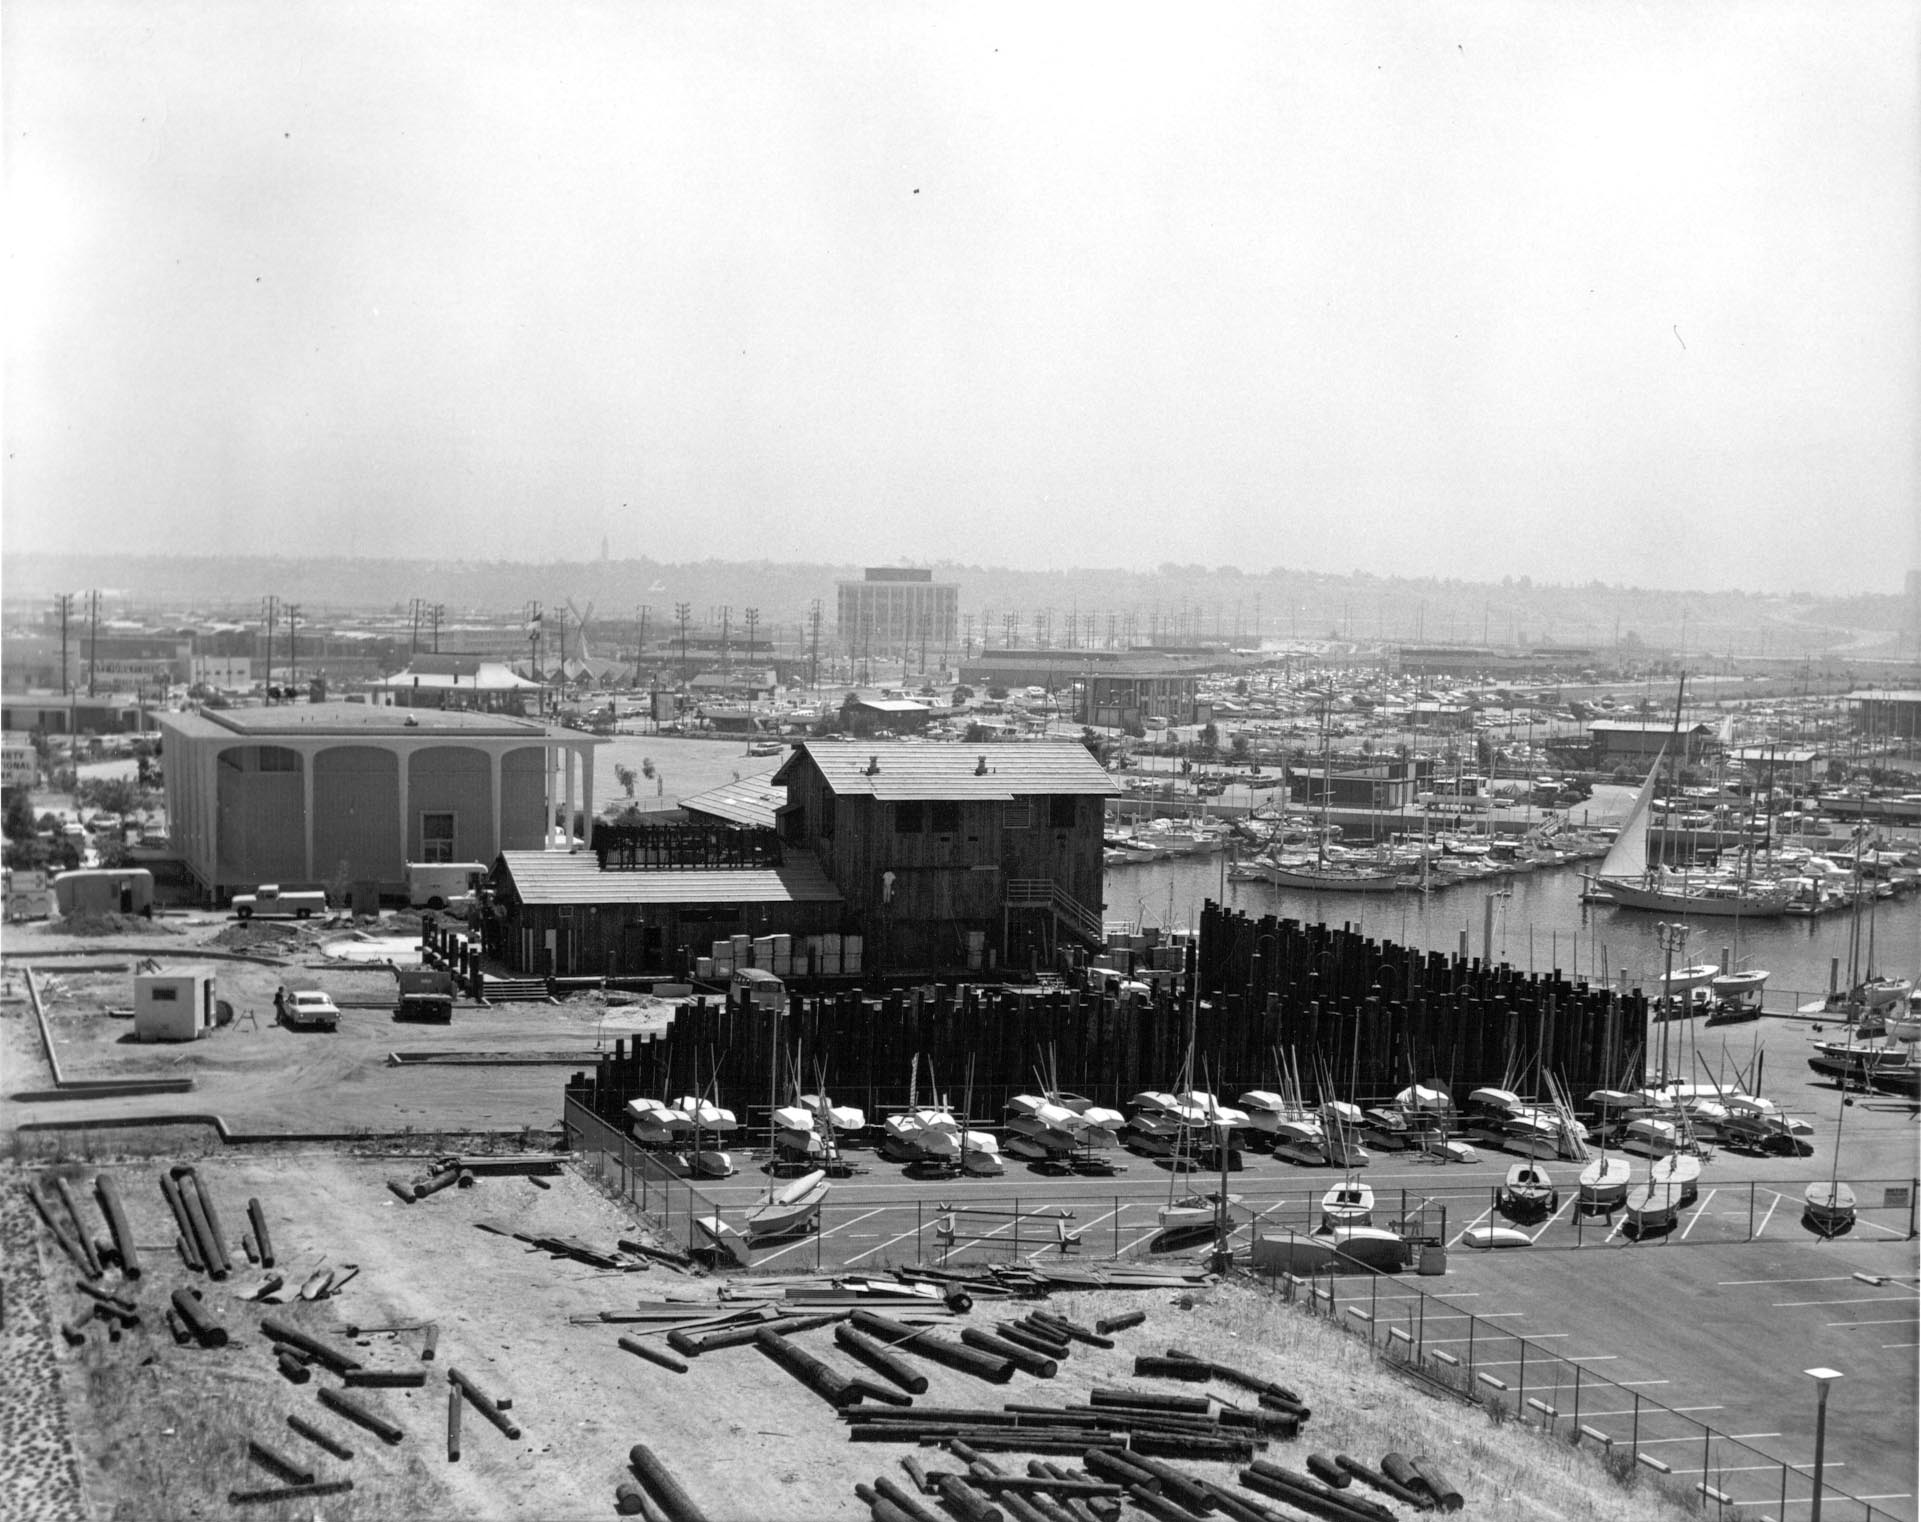 hm177bw-aerial-warehouse-restaurant-under-construction-1969